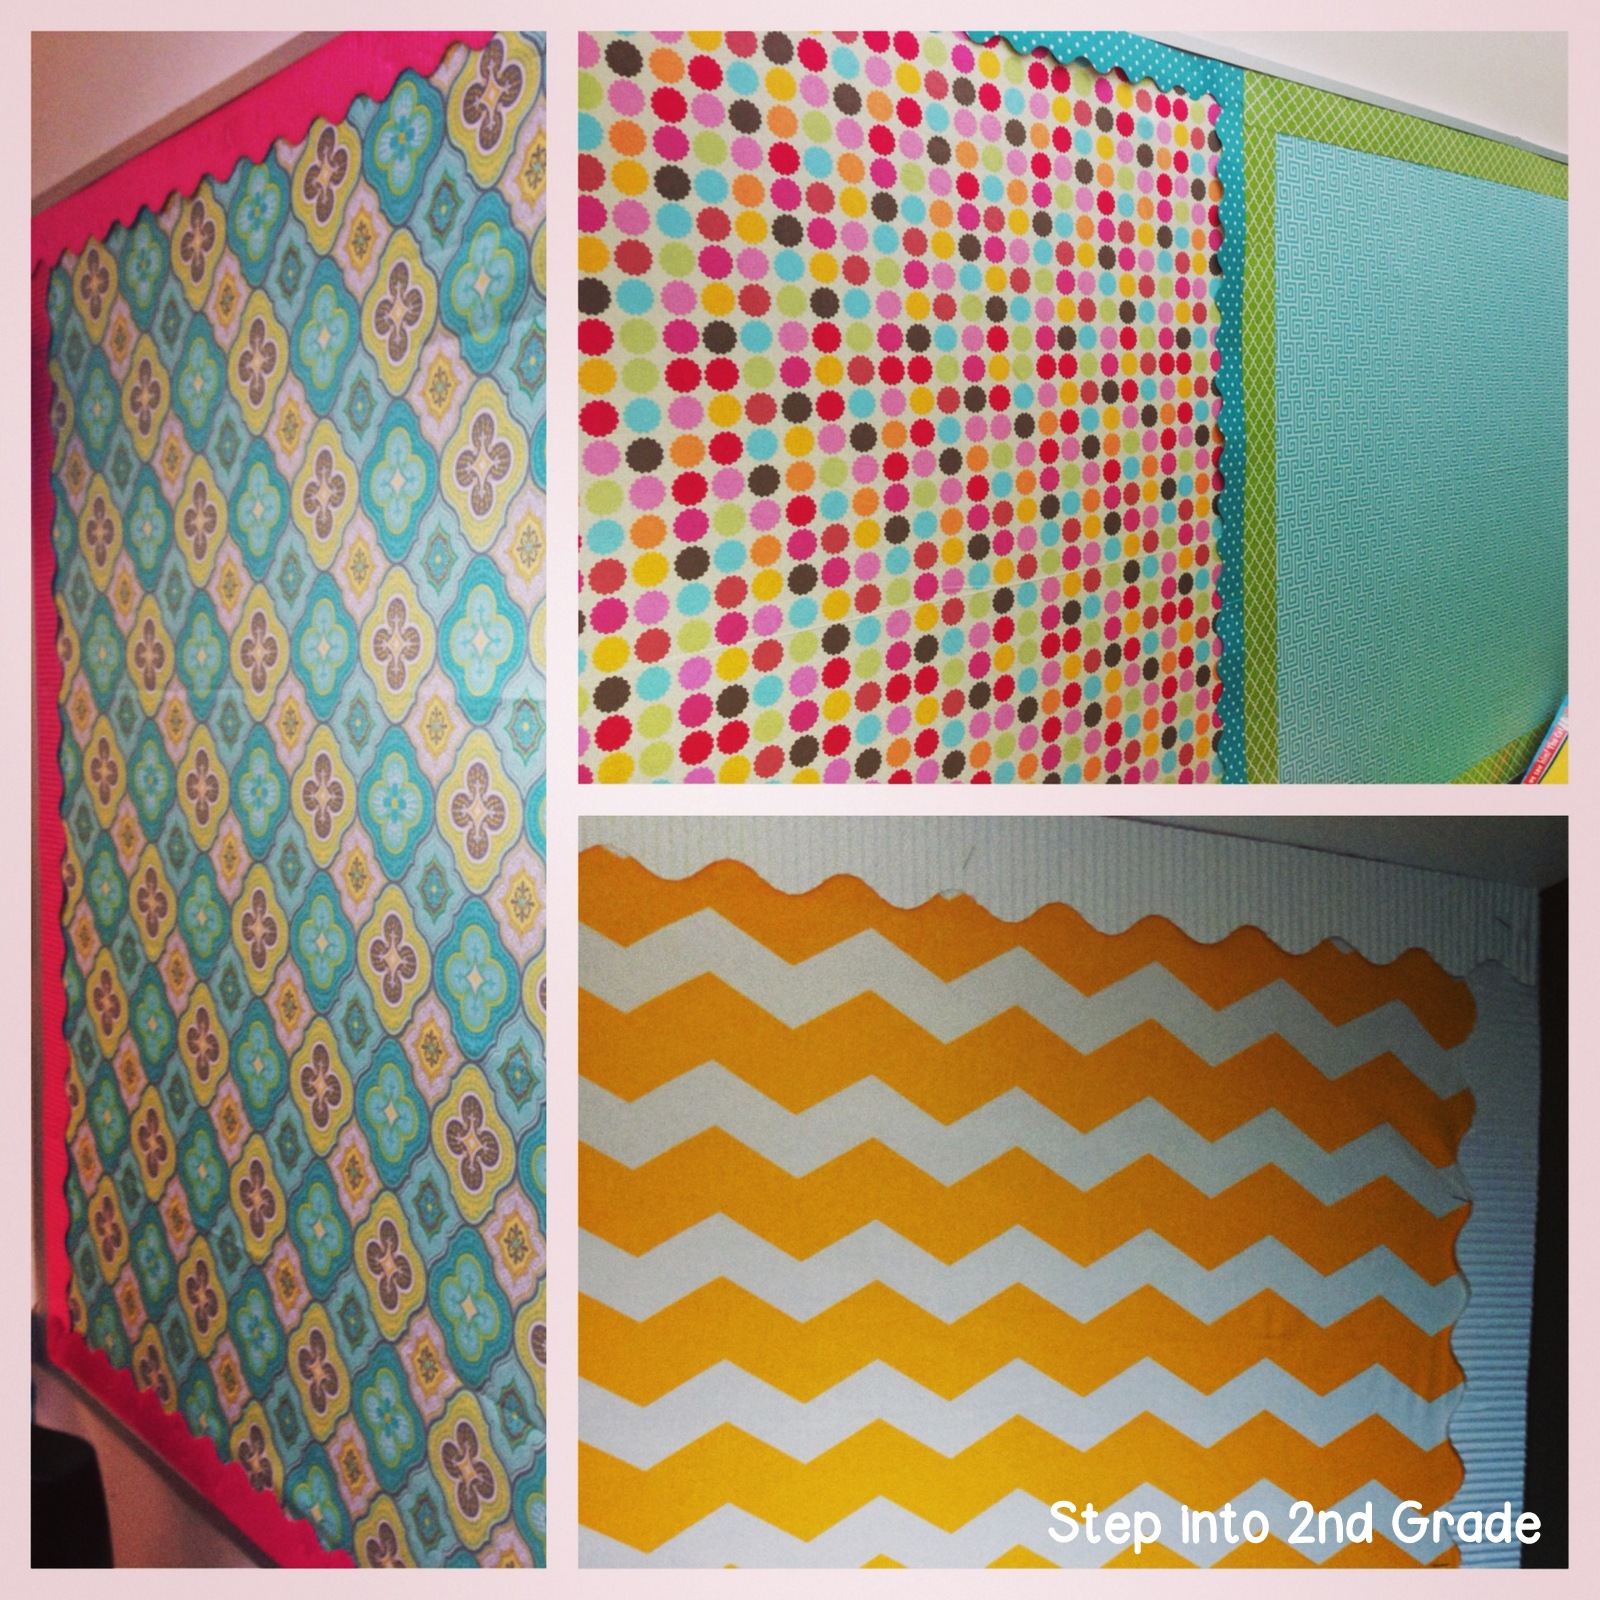 Bulletin Board Ideas 2 Year Olds: Step Into 2nd Grade With Mrs. Lemons: Getting Ready For